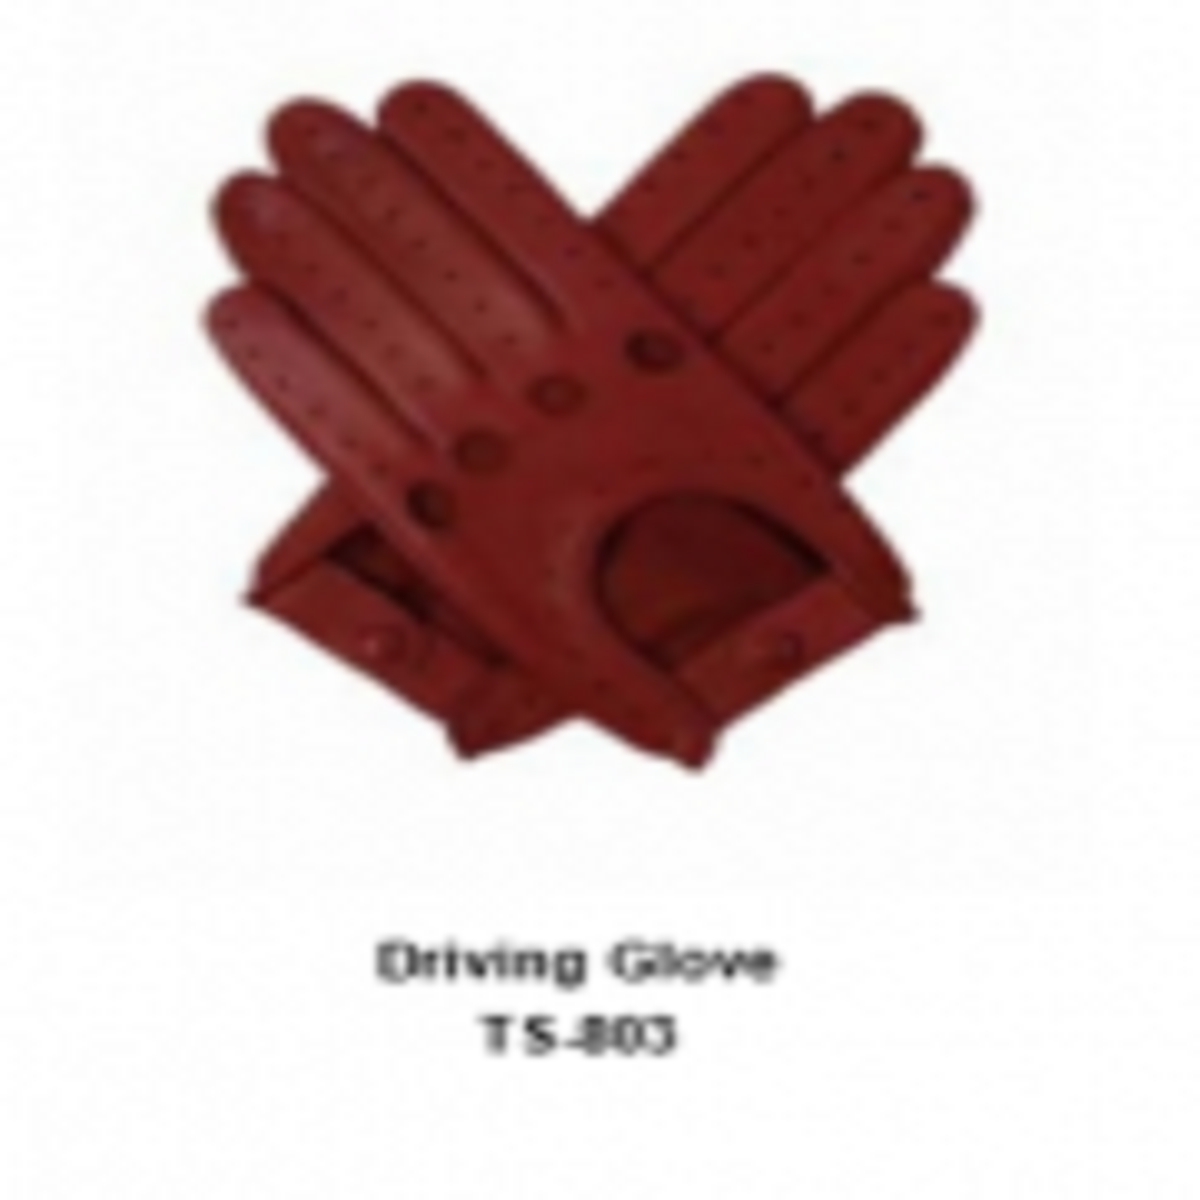 Leather Men's Fashion Driving Gloves Model No. TSI 803